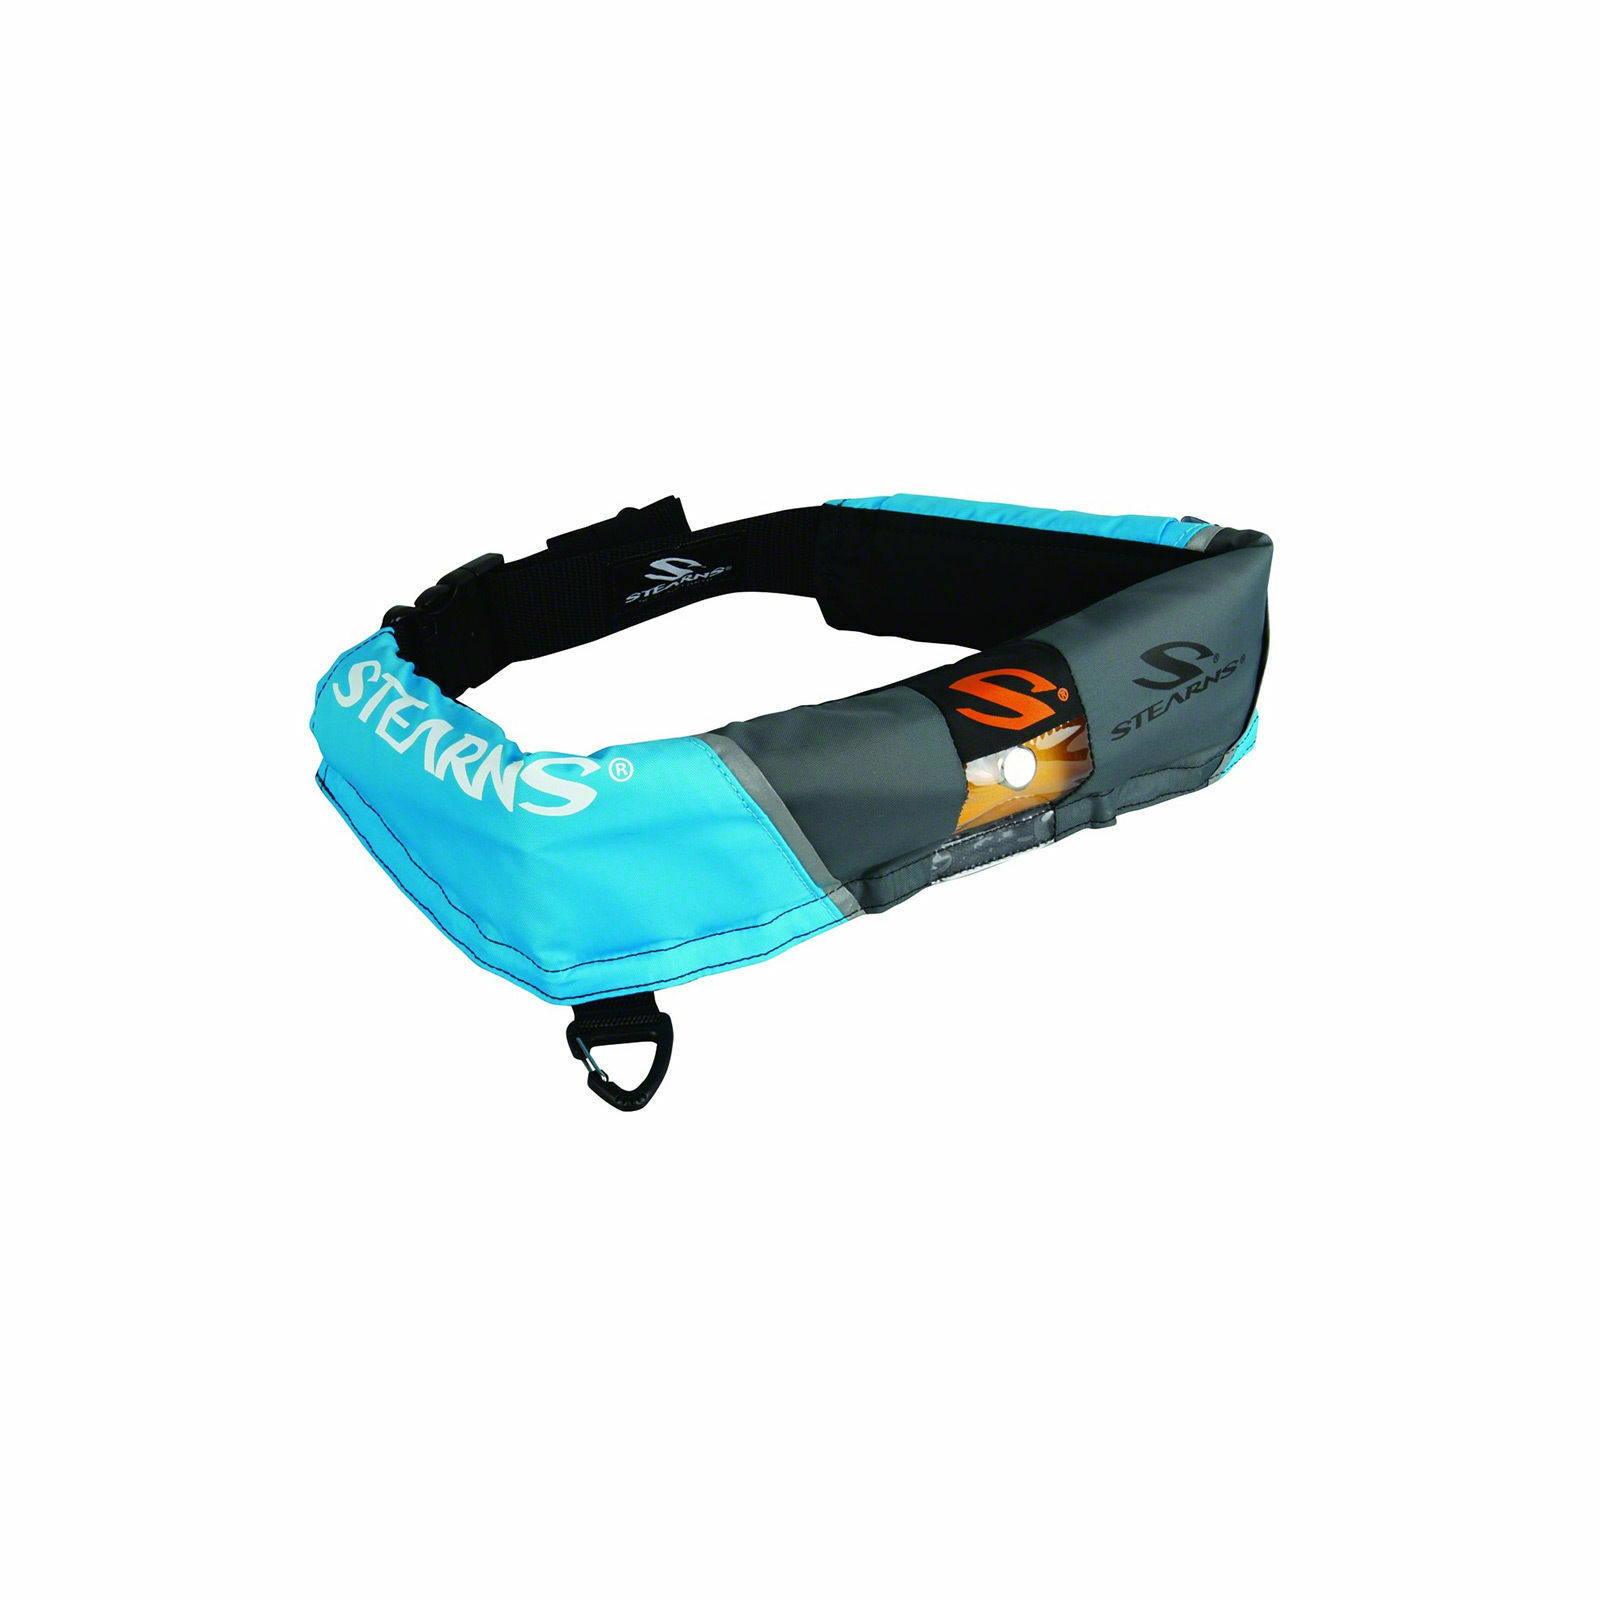 nuovo Stearns Inflatable PFD 16g uomoual Belt blu 0340 SUP 2000013883